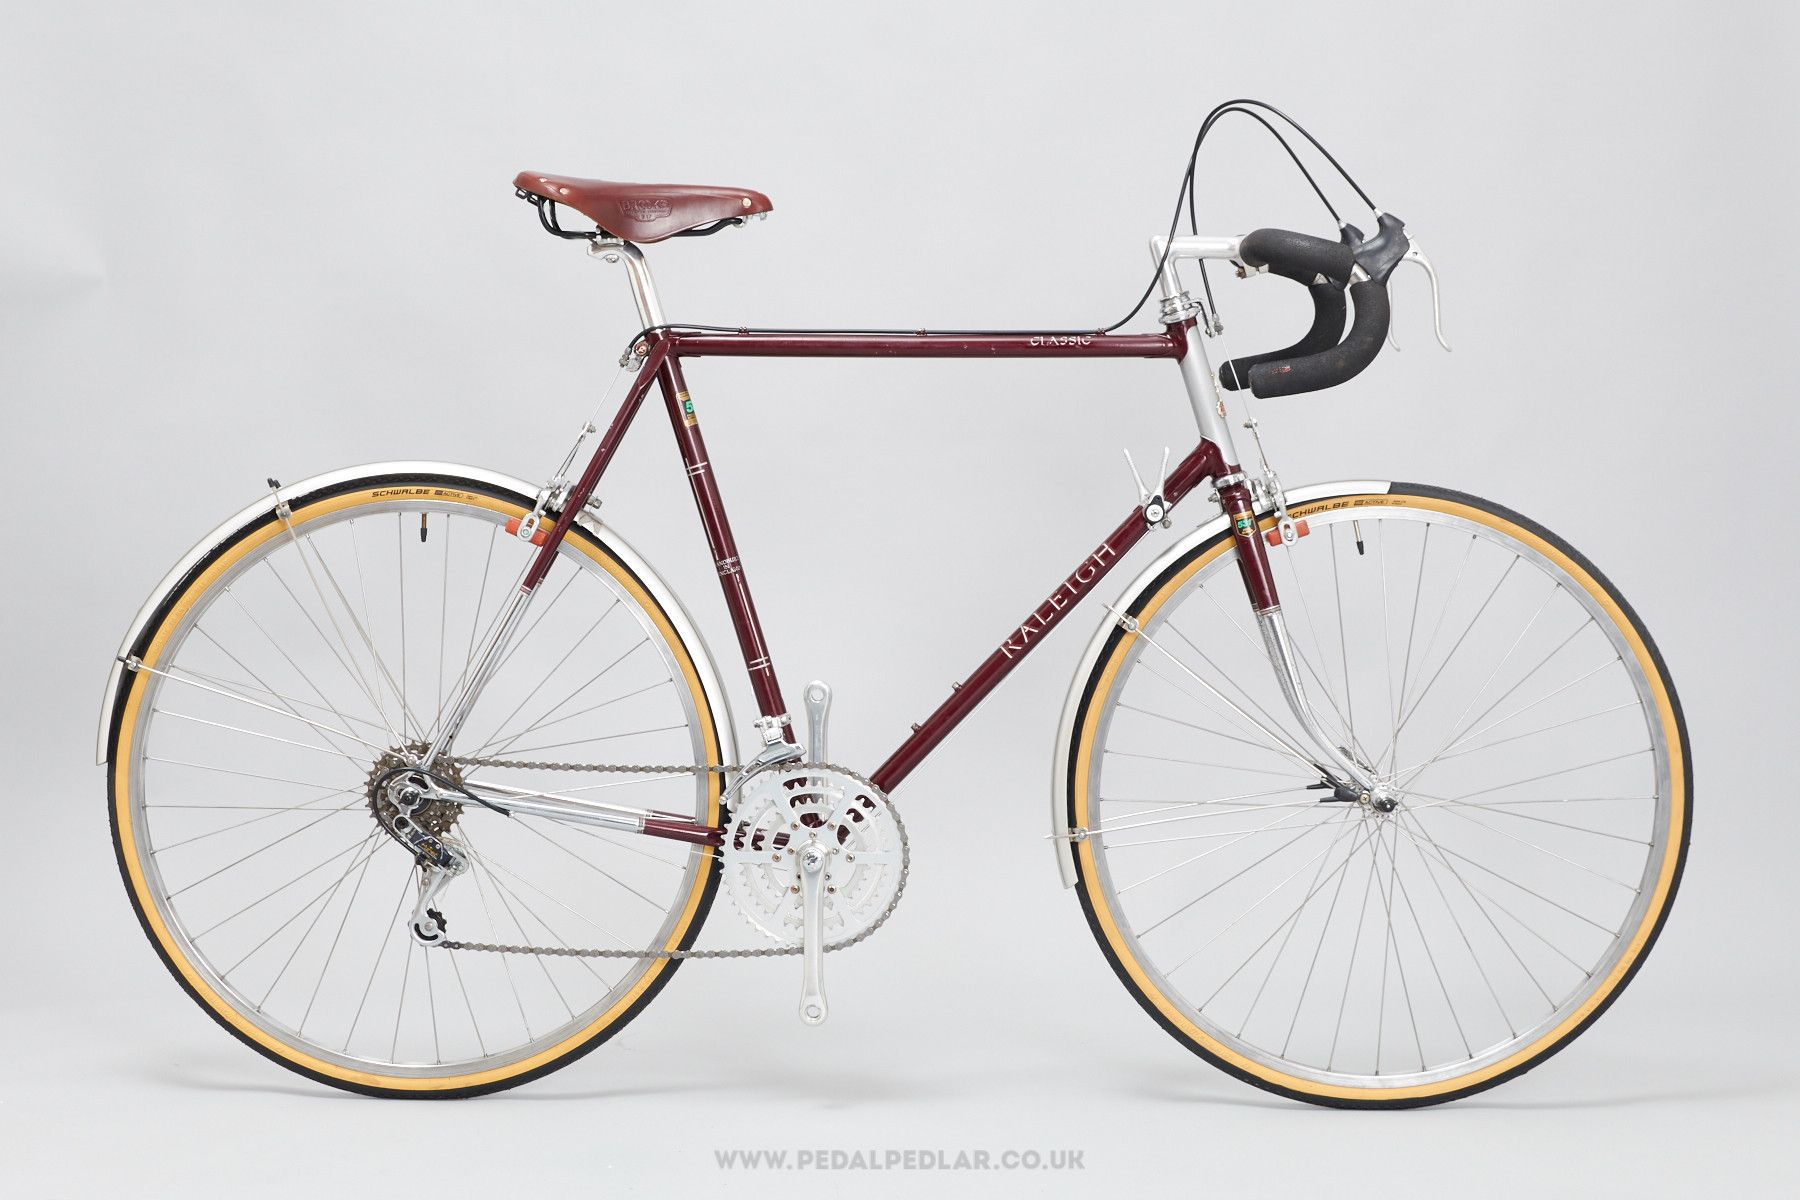 58cm Raleigh Classic Vintage Touring Road Bike Bikes